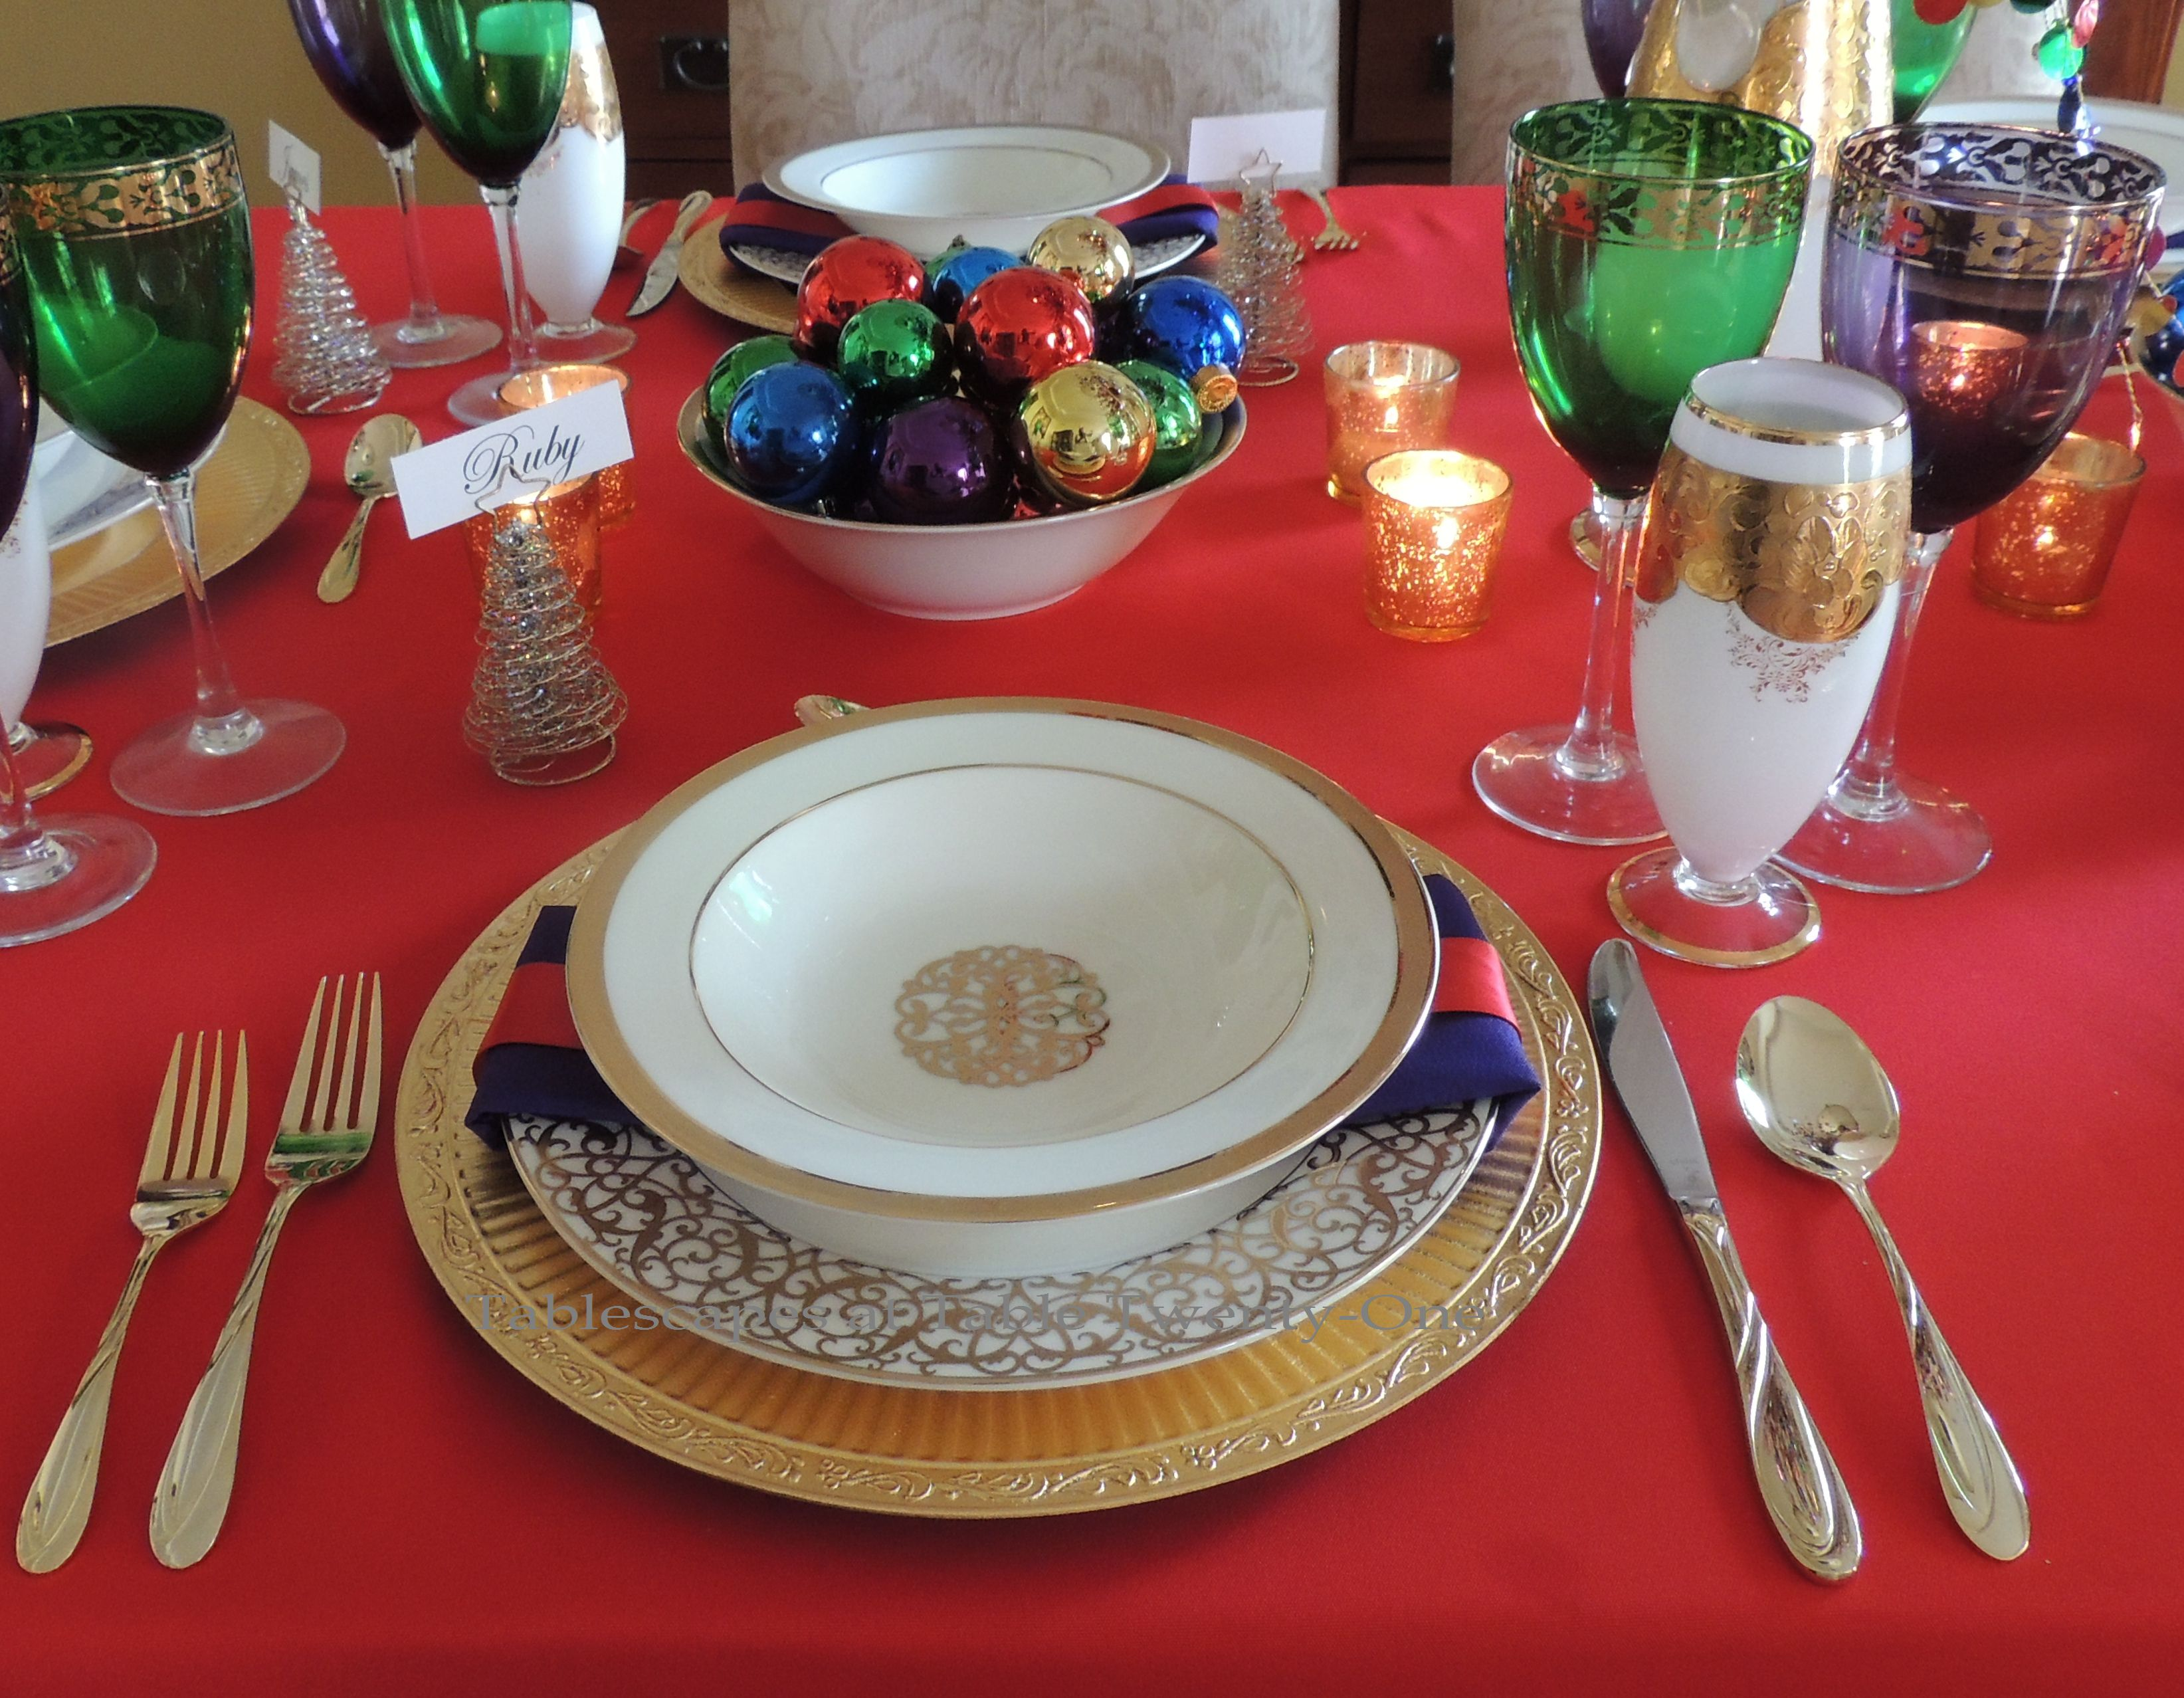 Tablescapes at Table Twenty-One, Merry & Bright Multi-Color Christmas: Place setting